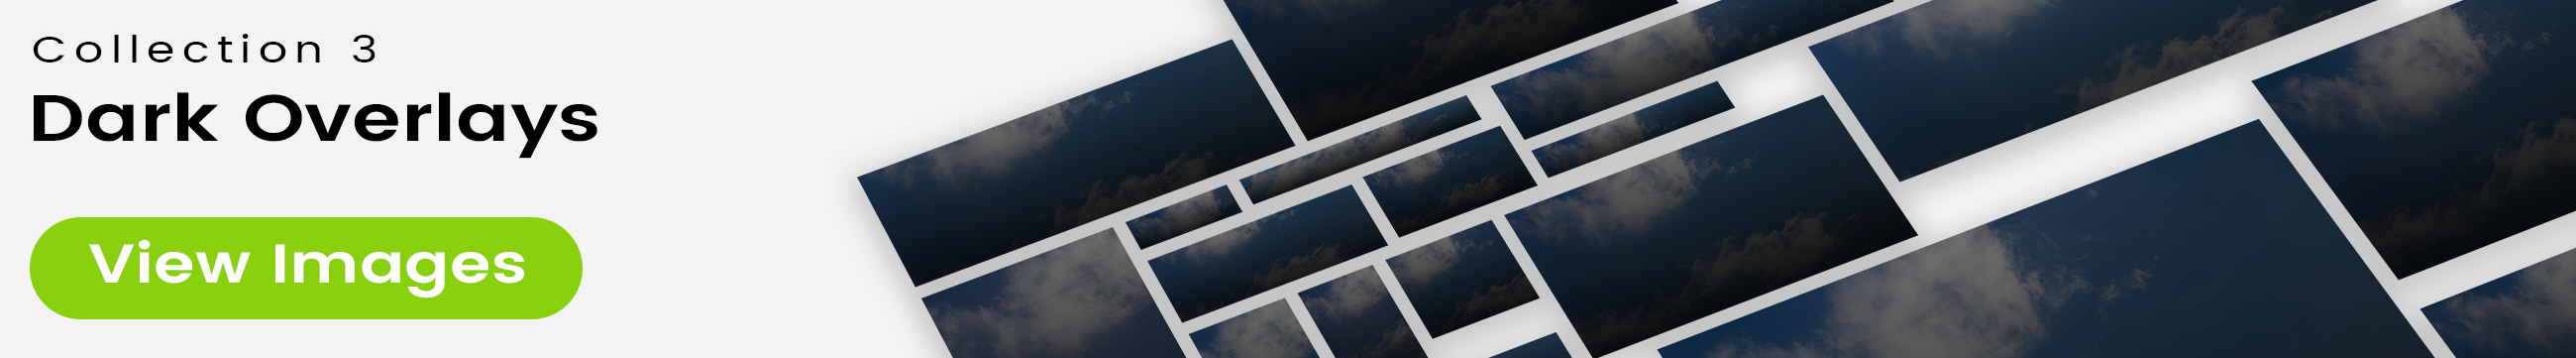 See 25 bonus images included with clouds stock image 9470. Collection 3 of 4 features a dark overlay design.